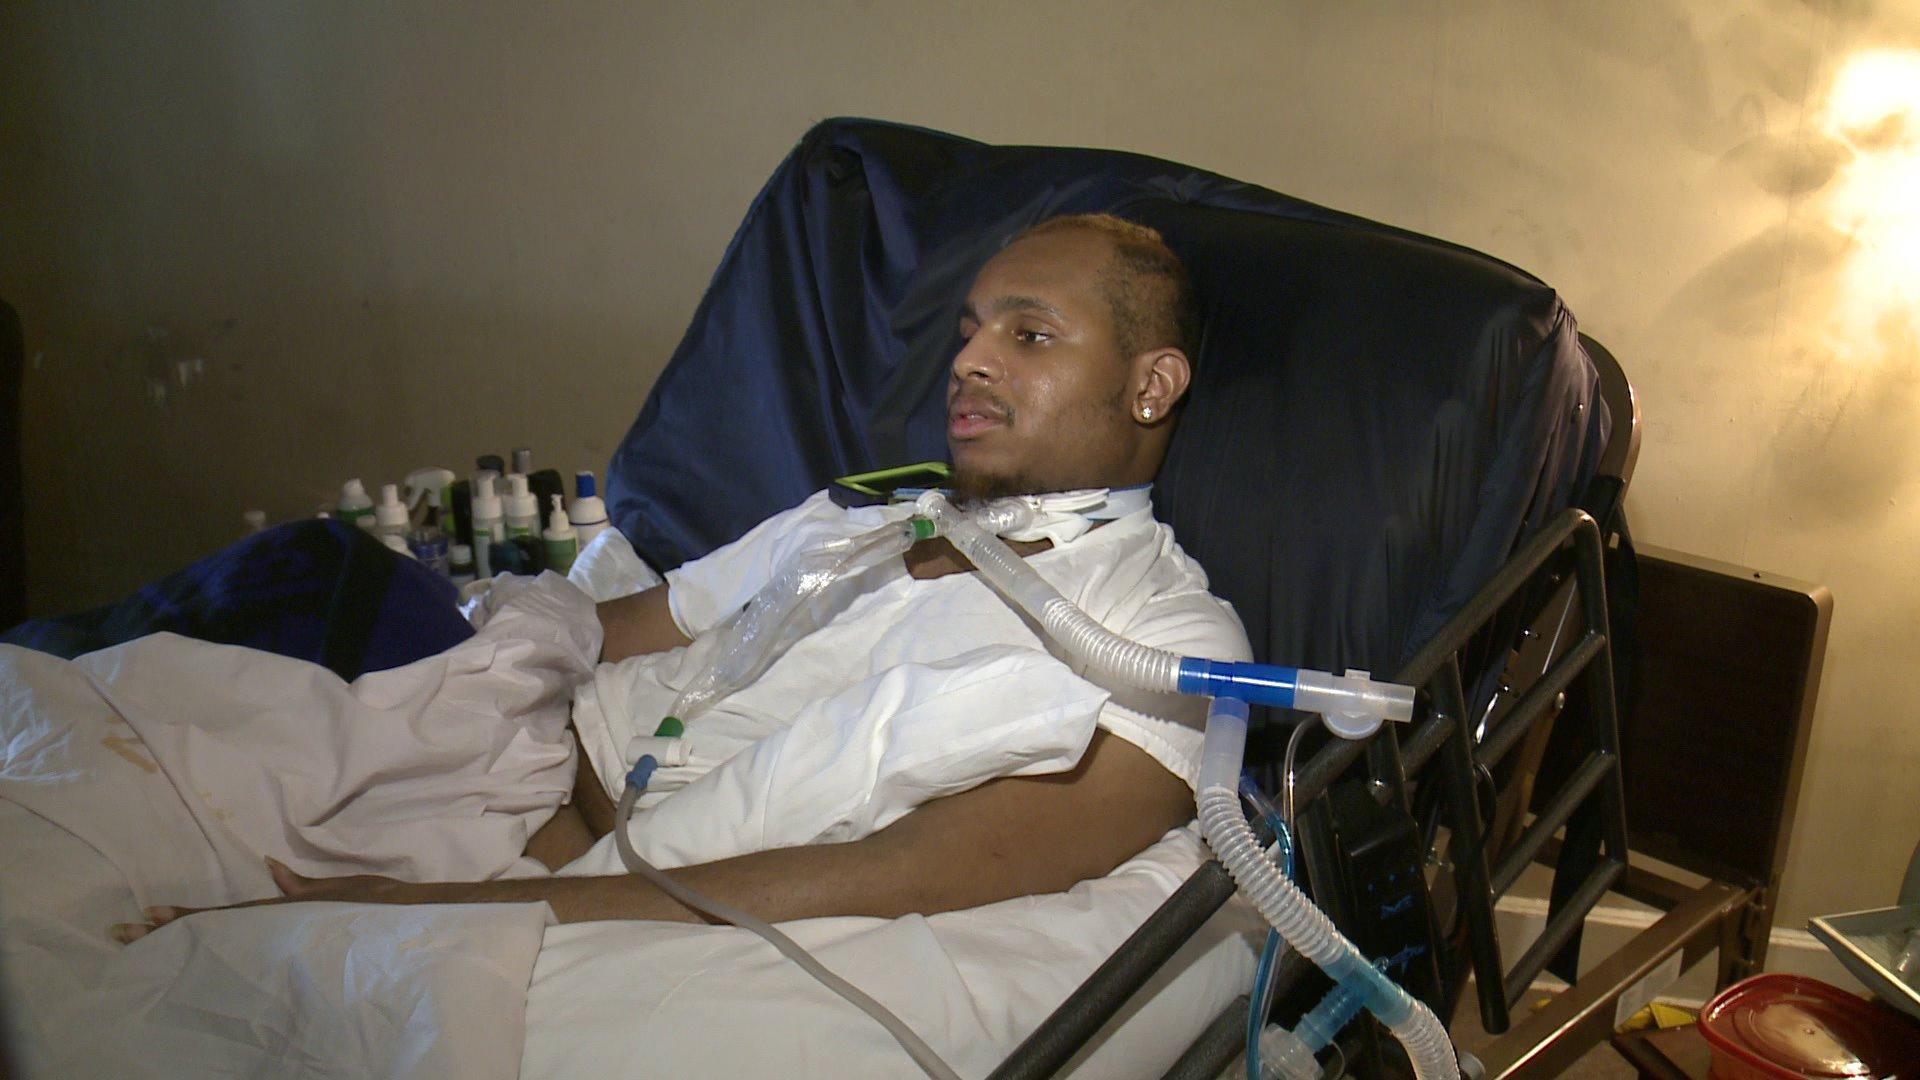 Typo Leads to Insurance Lapse for Paralyzed, Bedridden Man